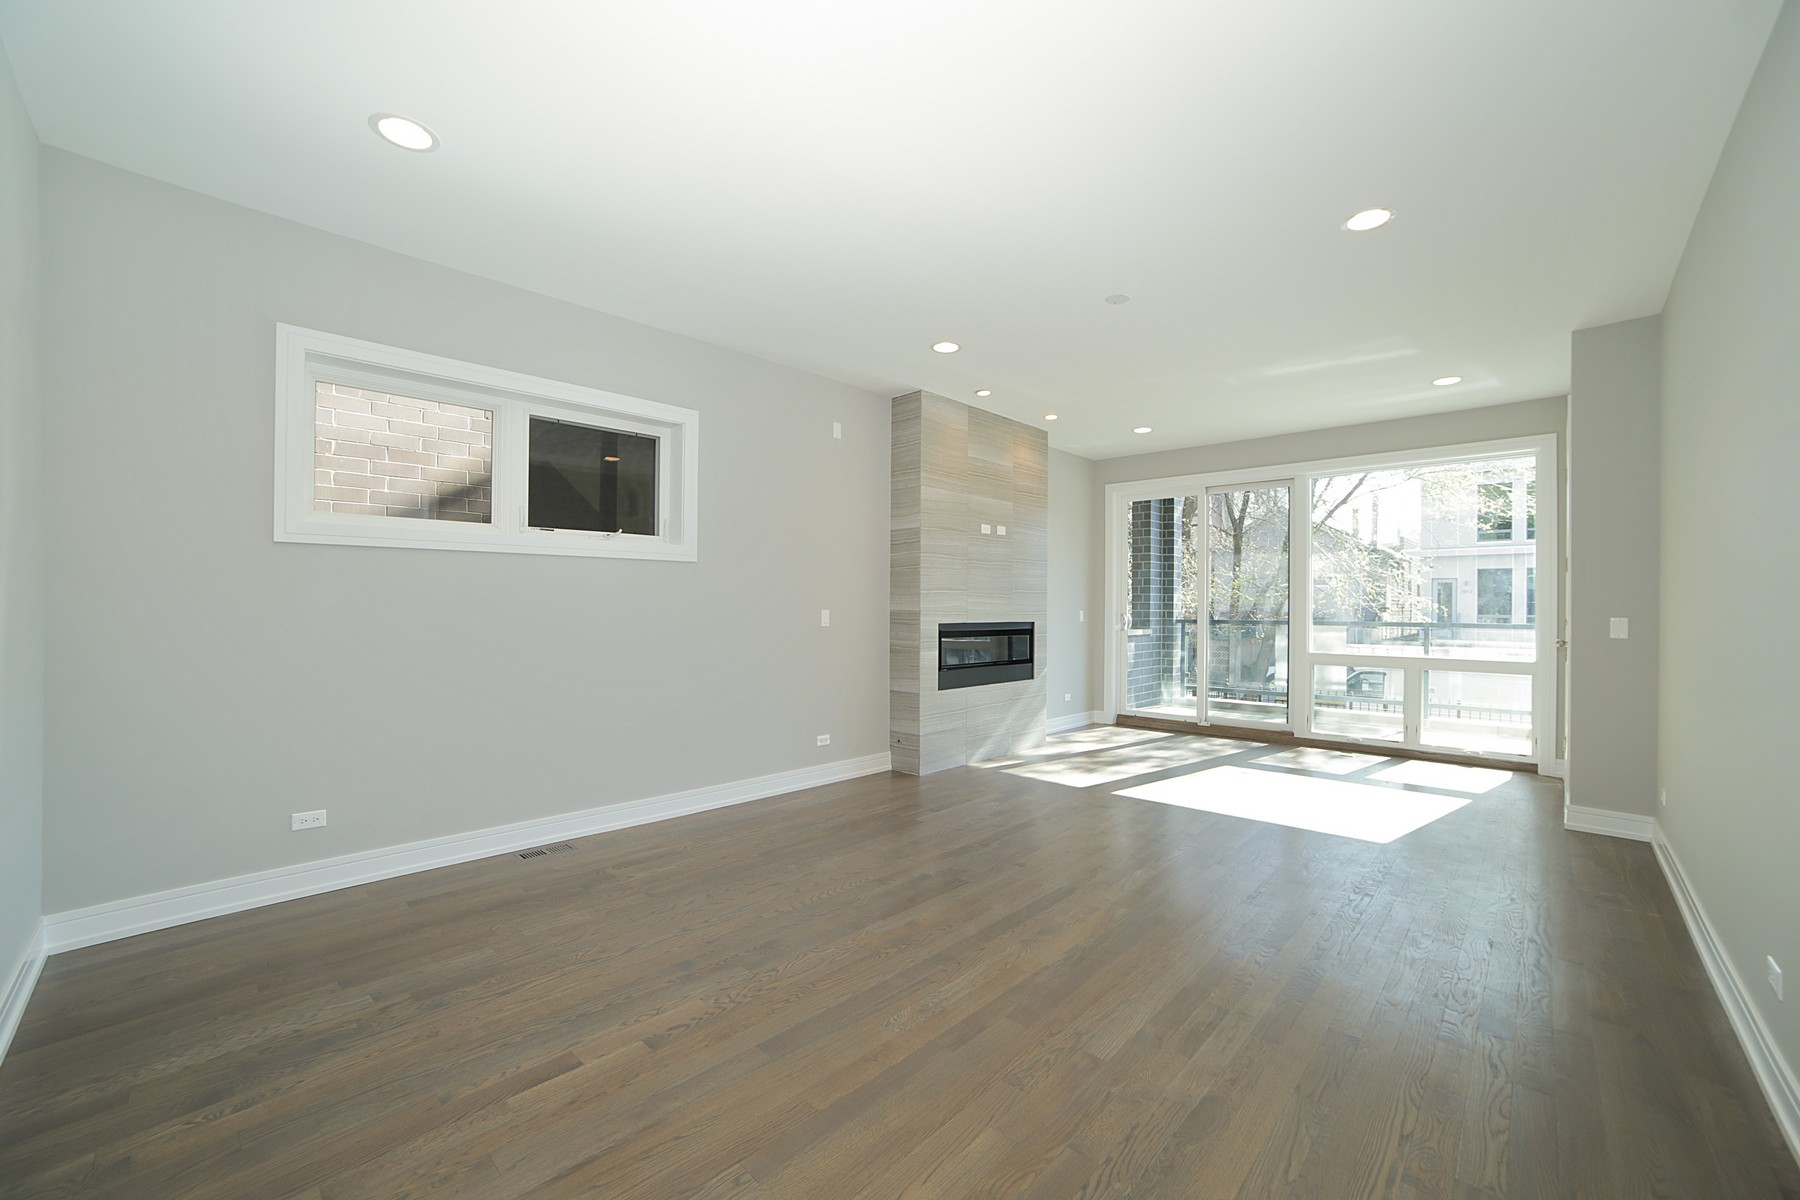 Duplex vì Bán tại New Construction With Great Curb Appeal 1110 N Marshfield Avenue Unit 1 West Town, Chicago, Illinois 60622 Hoa Kỳ